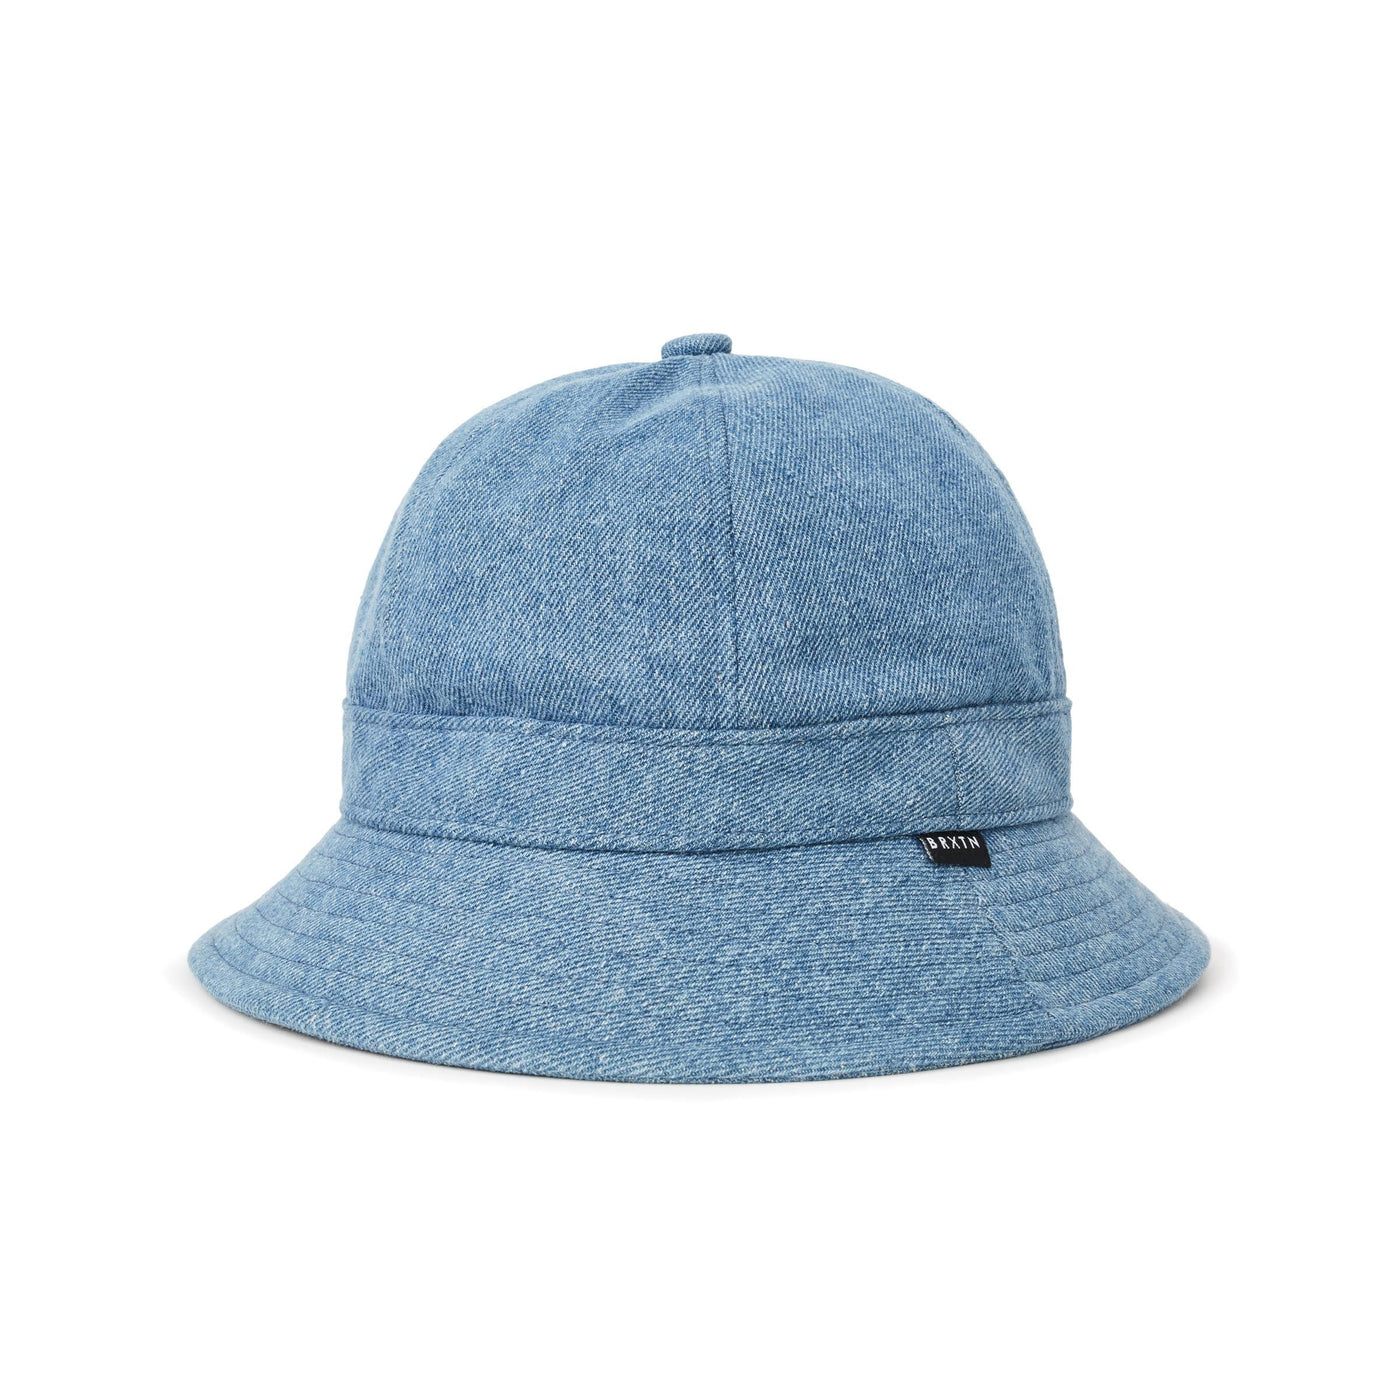 dcf682ad1bf357 Brixton - Banks II Short Brim Bucket Hat - Blue Washed Denim – O's ...